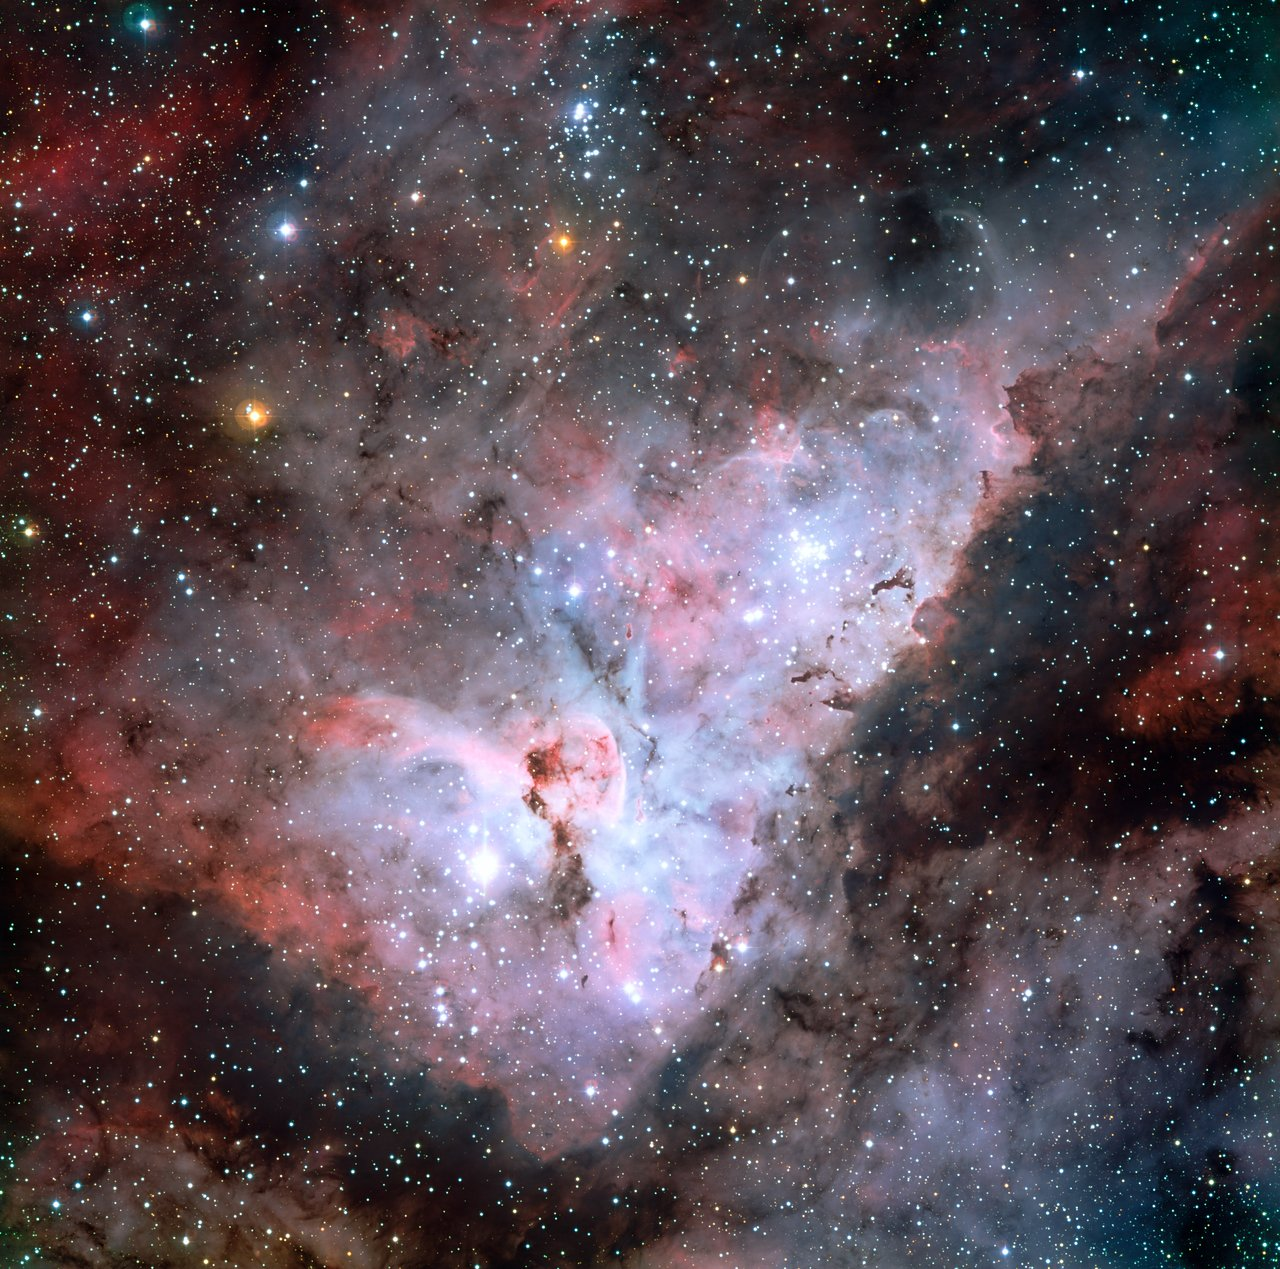 Mounted image 034: The Carina Nebula